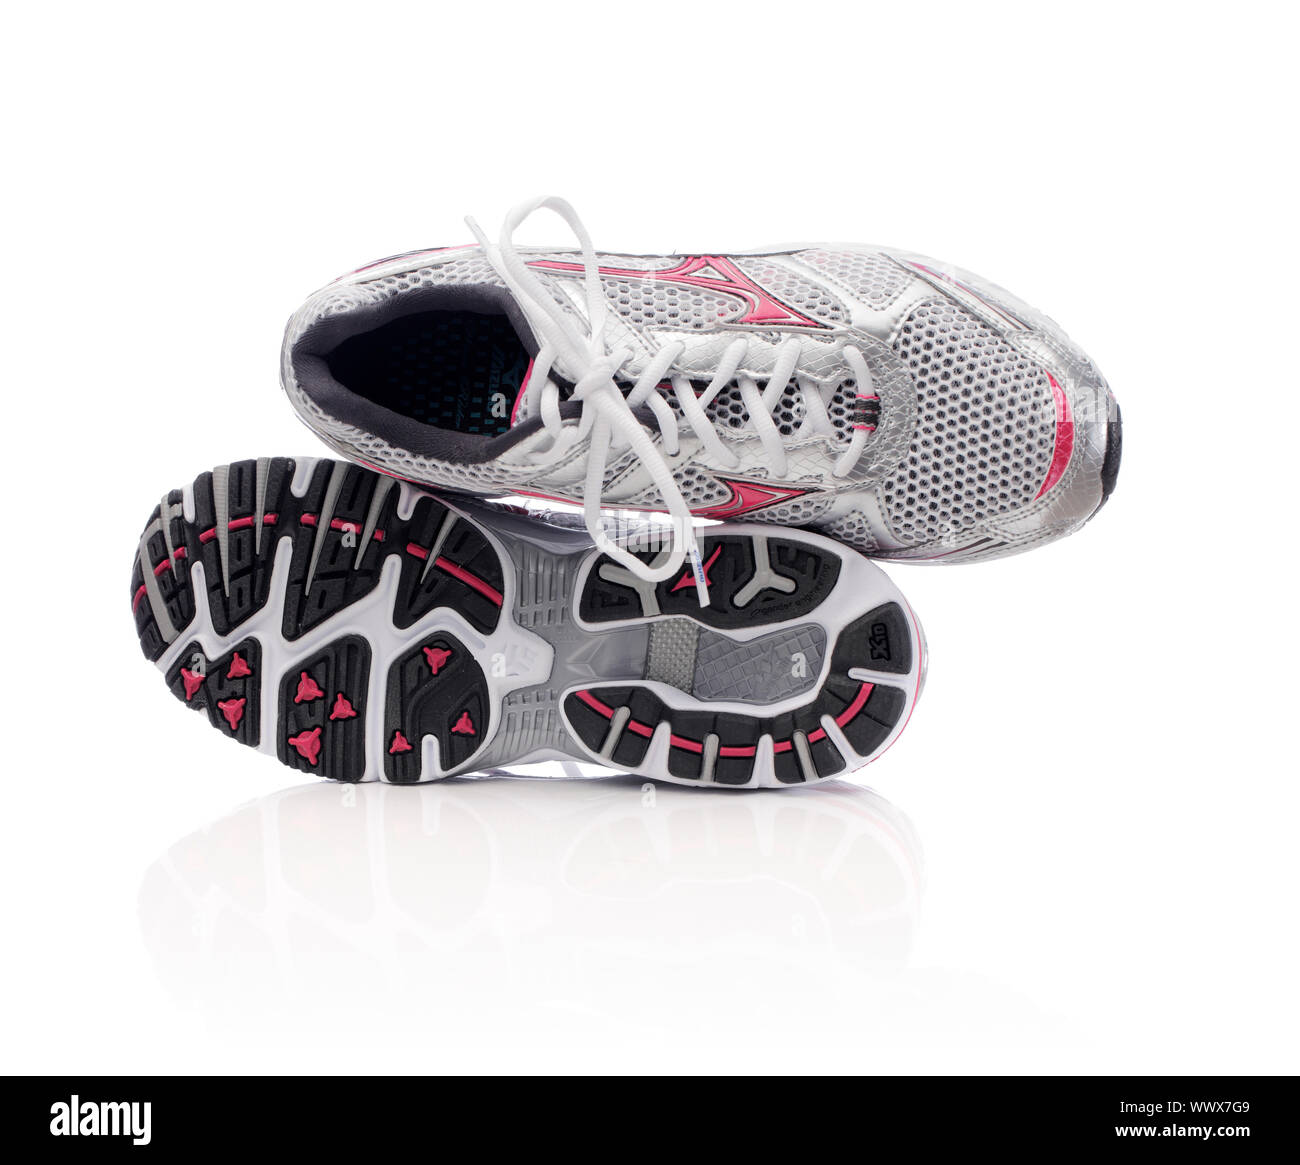 mizuno womens volleyball shoes size 8 queen mary's